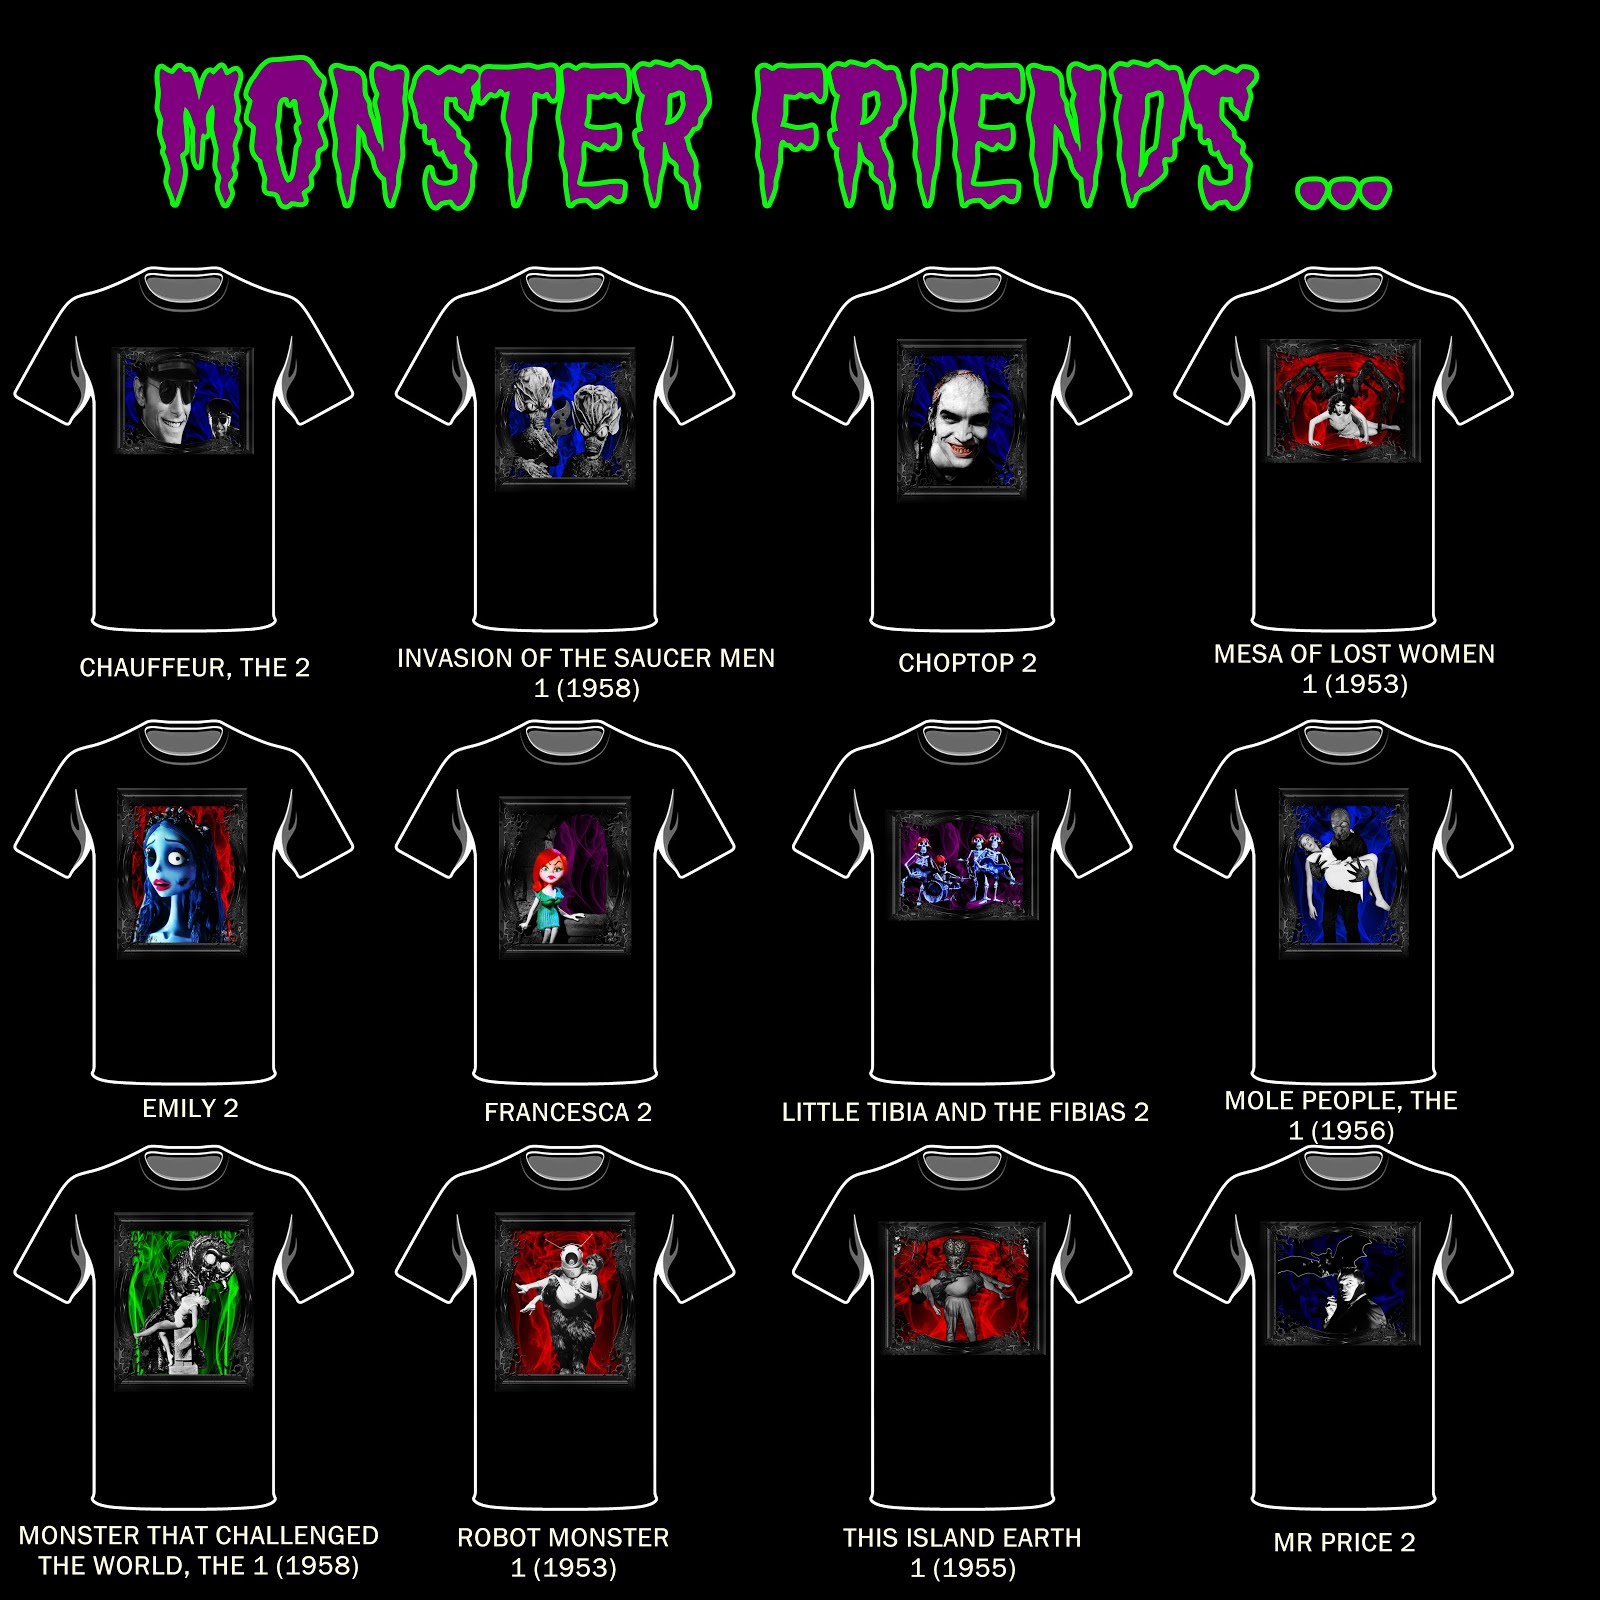 Monster Friends 3